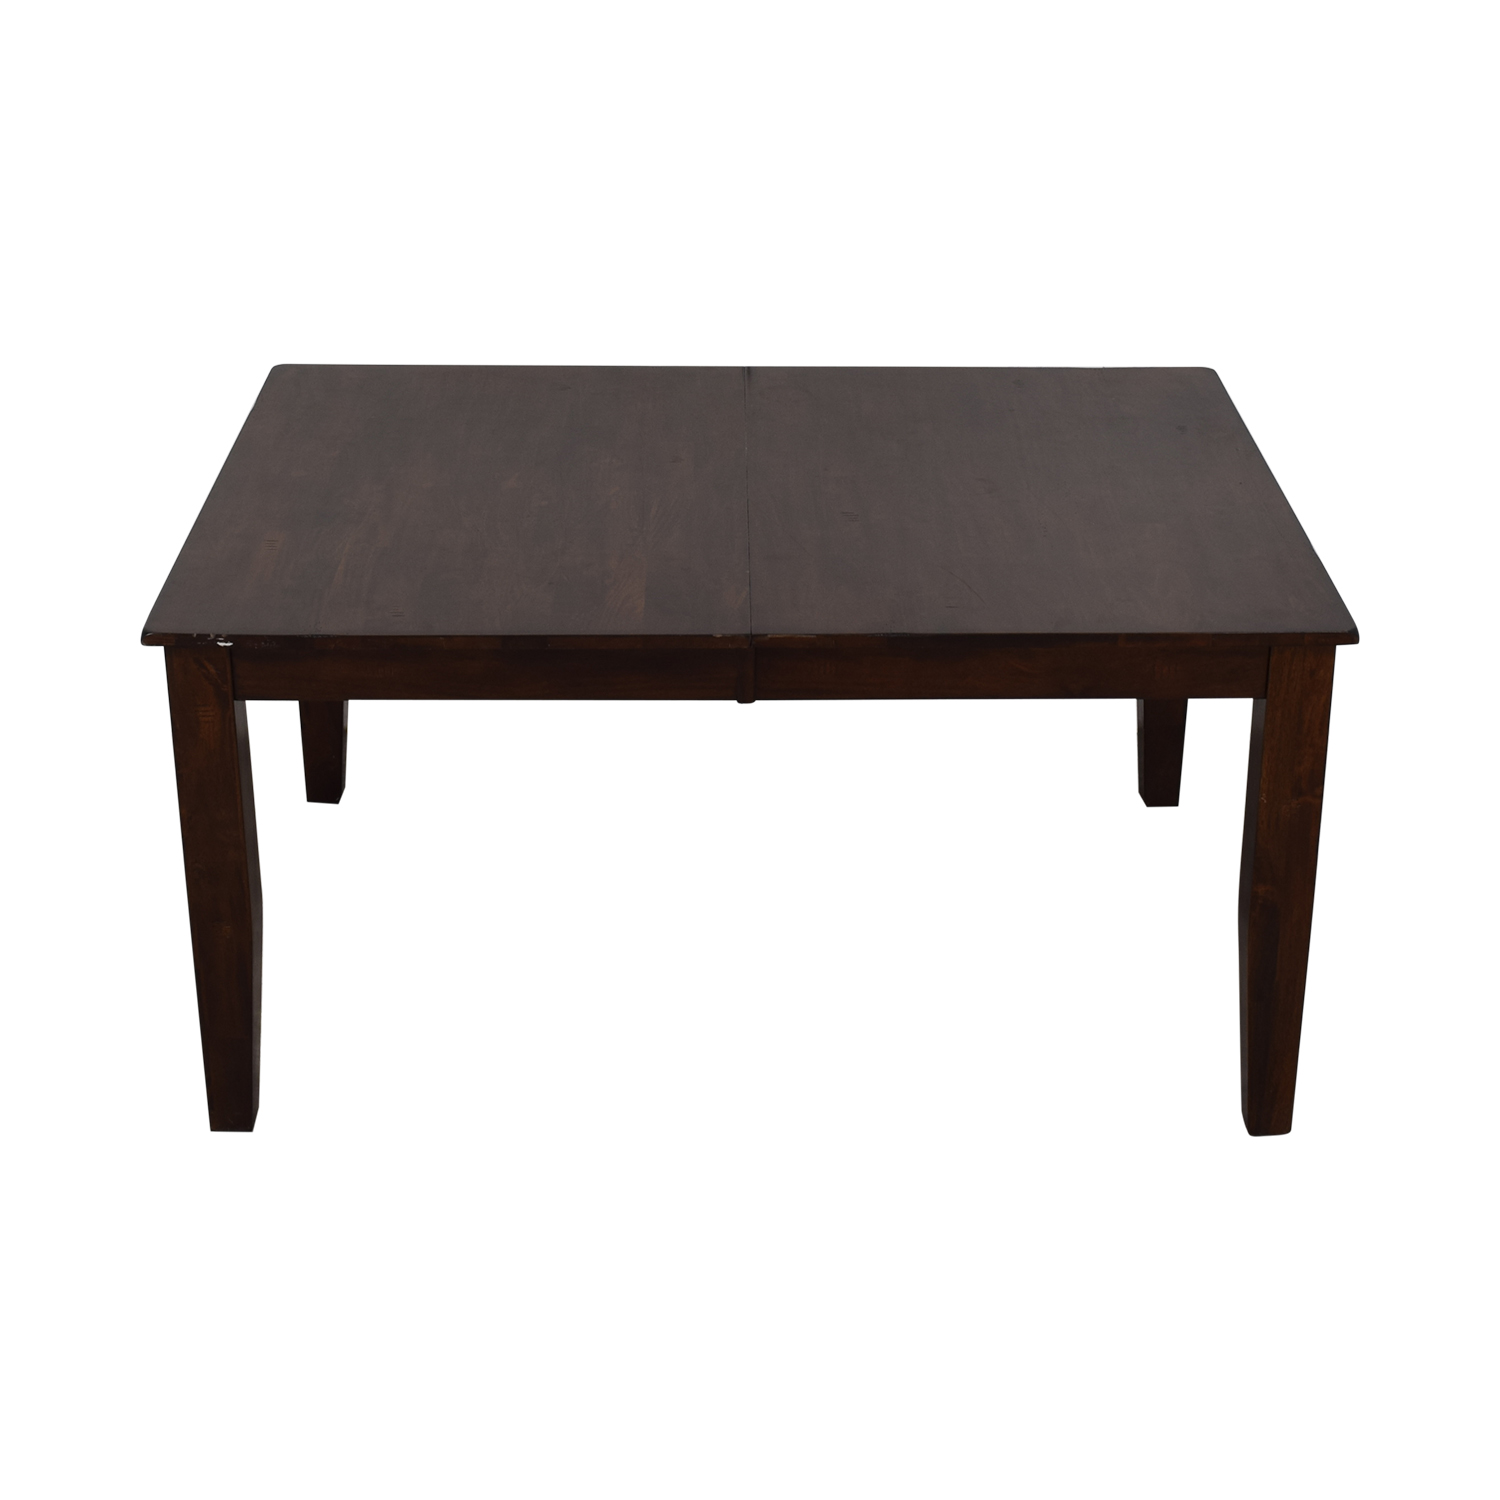 shop Raymour & Flanigan Kona Dining Table with Leaf Raymour & Flanigan Tables